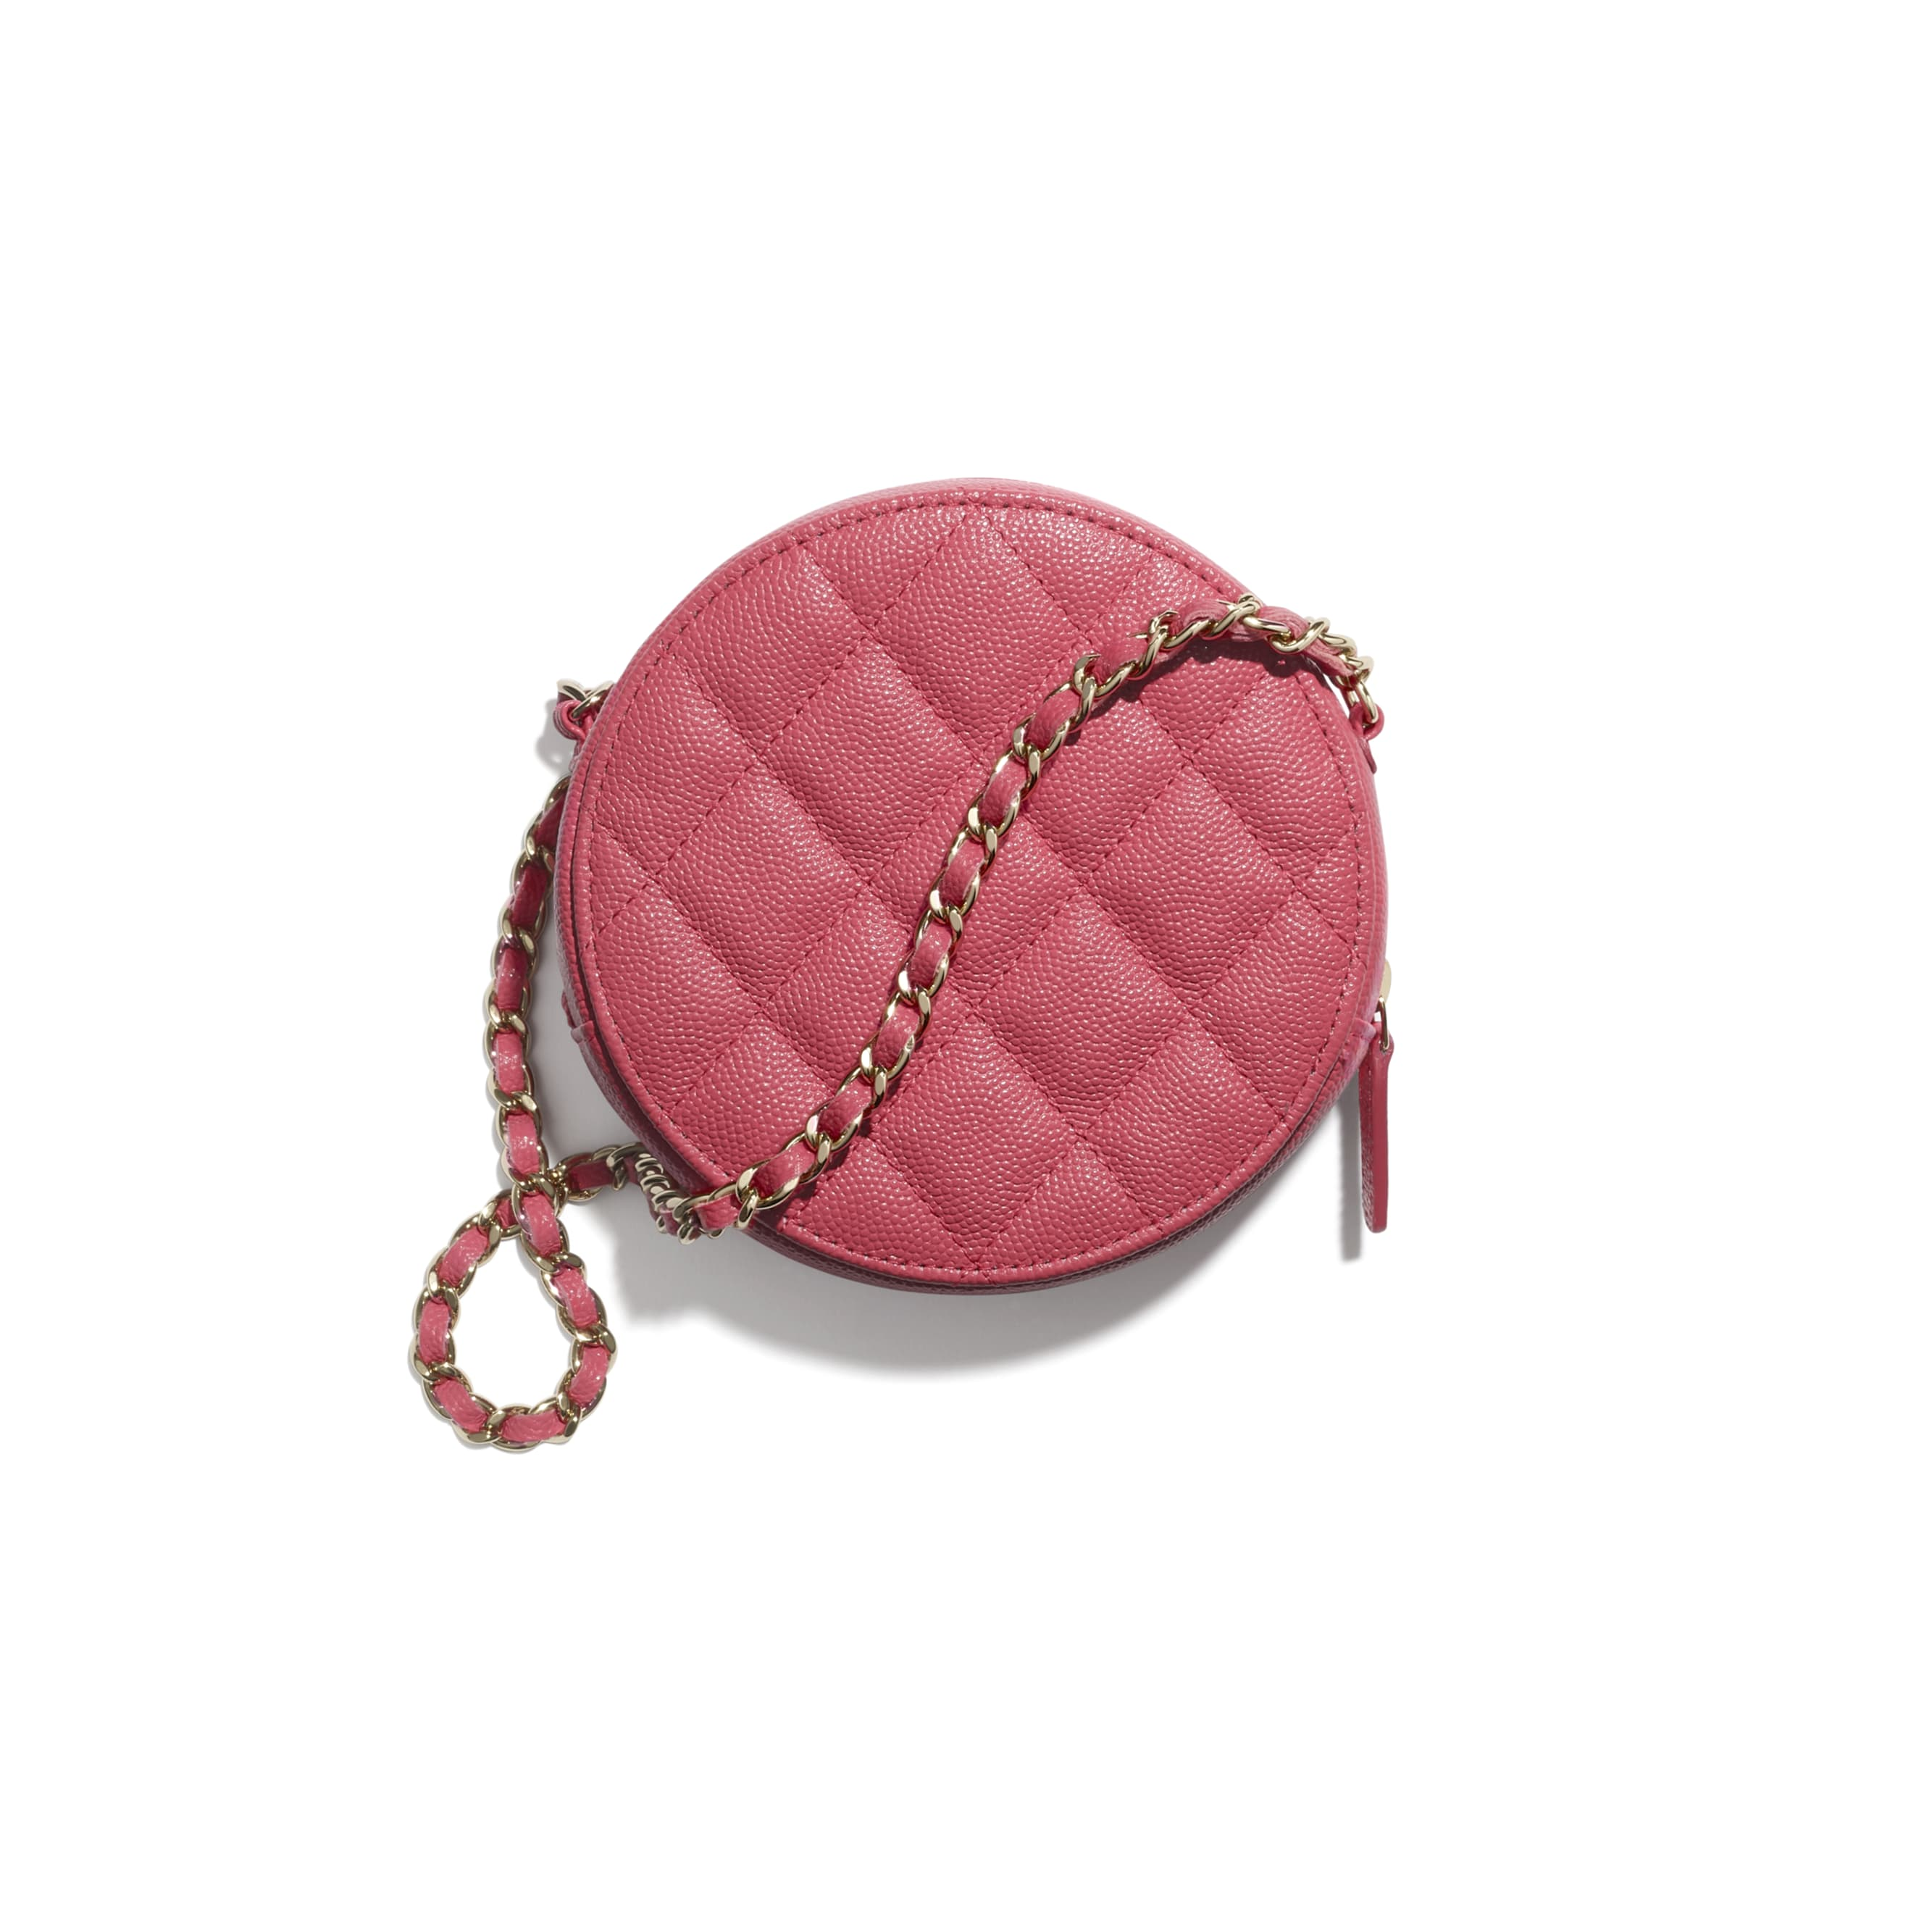 Clutch With Chain - Pink - Grained Calfskin & Gold-Tone Metal - CHANEL - Alternative view - see standard sized version